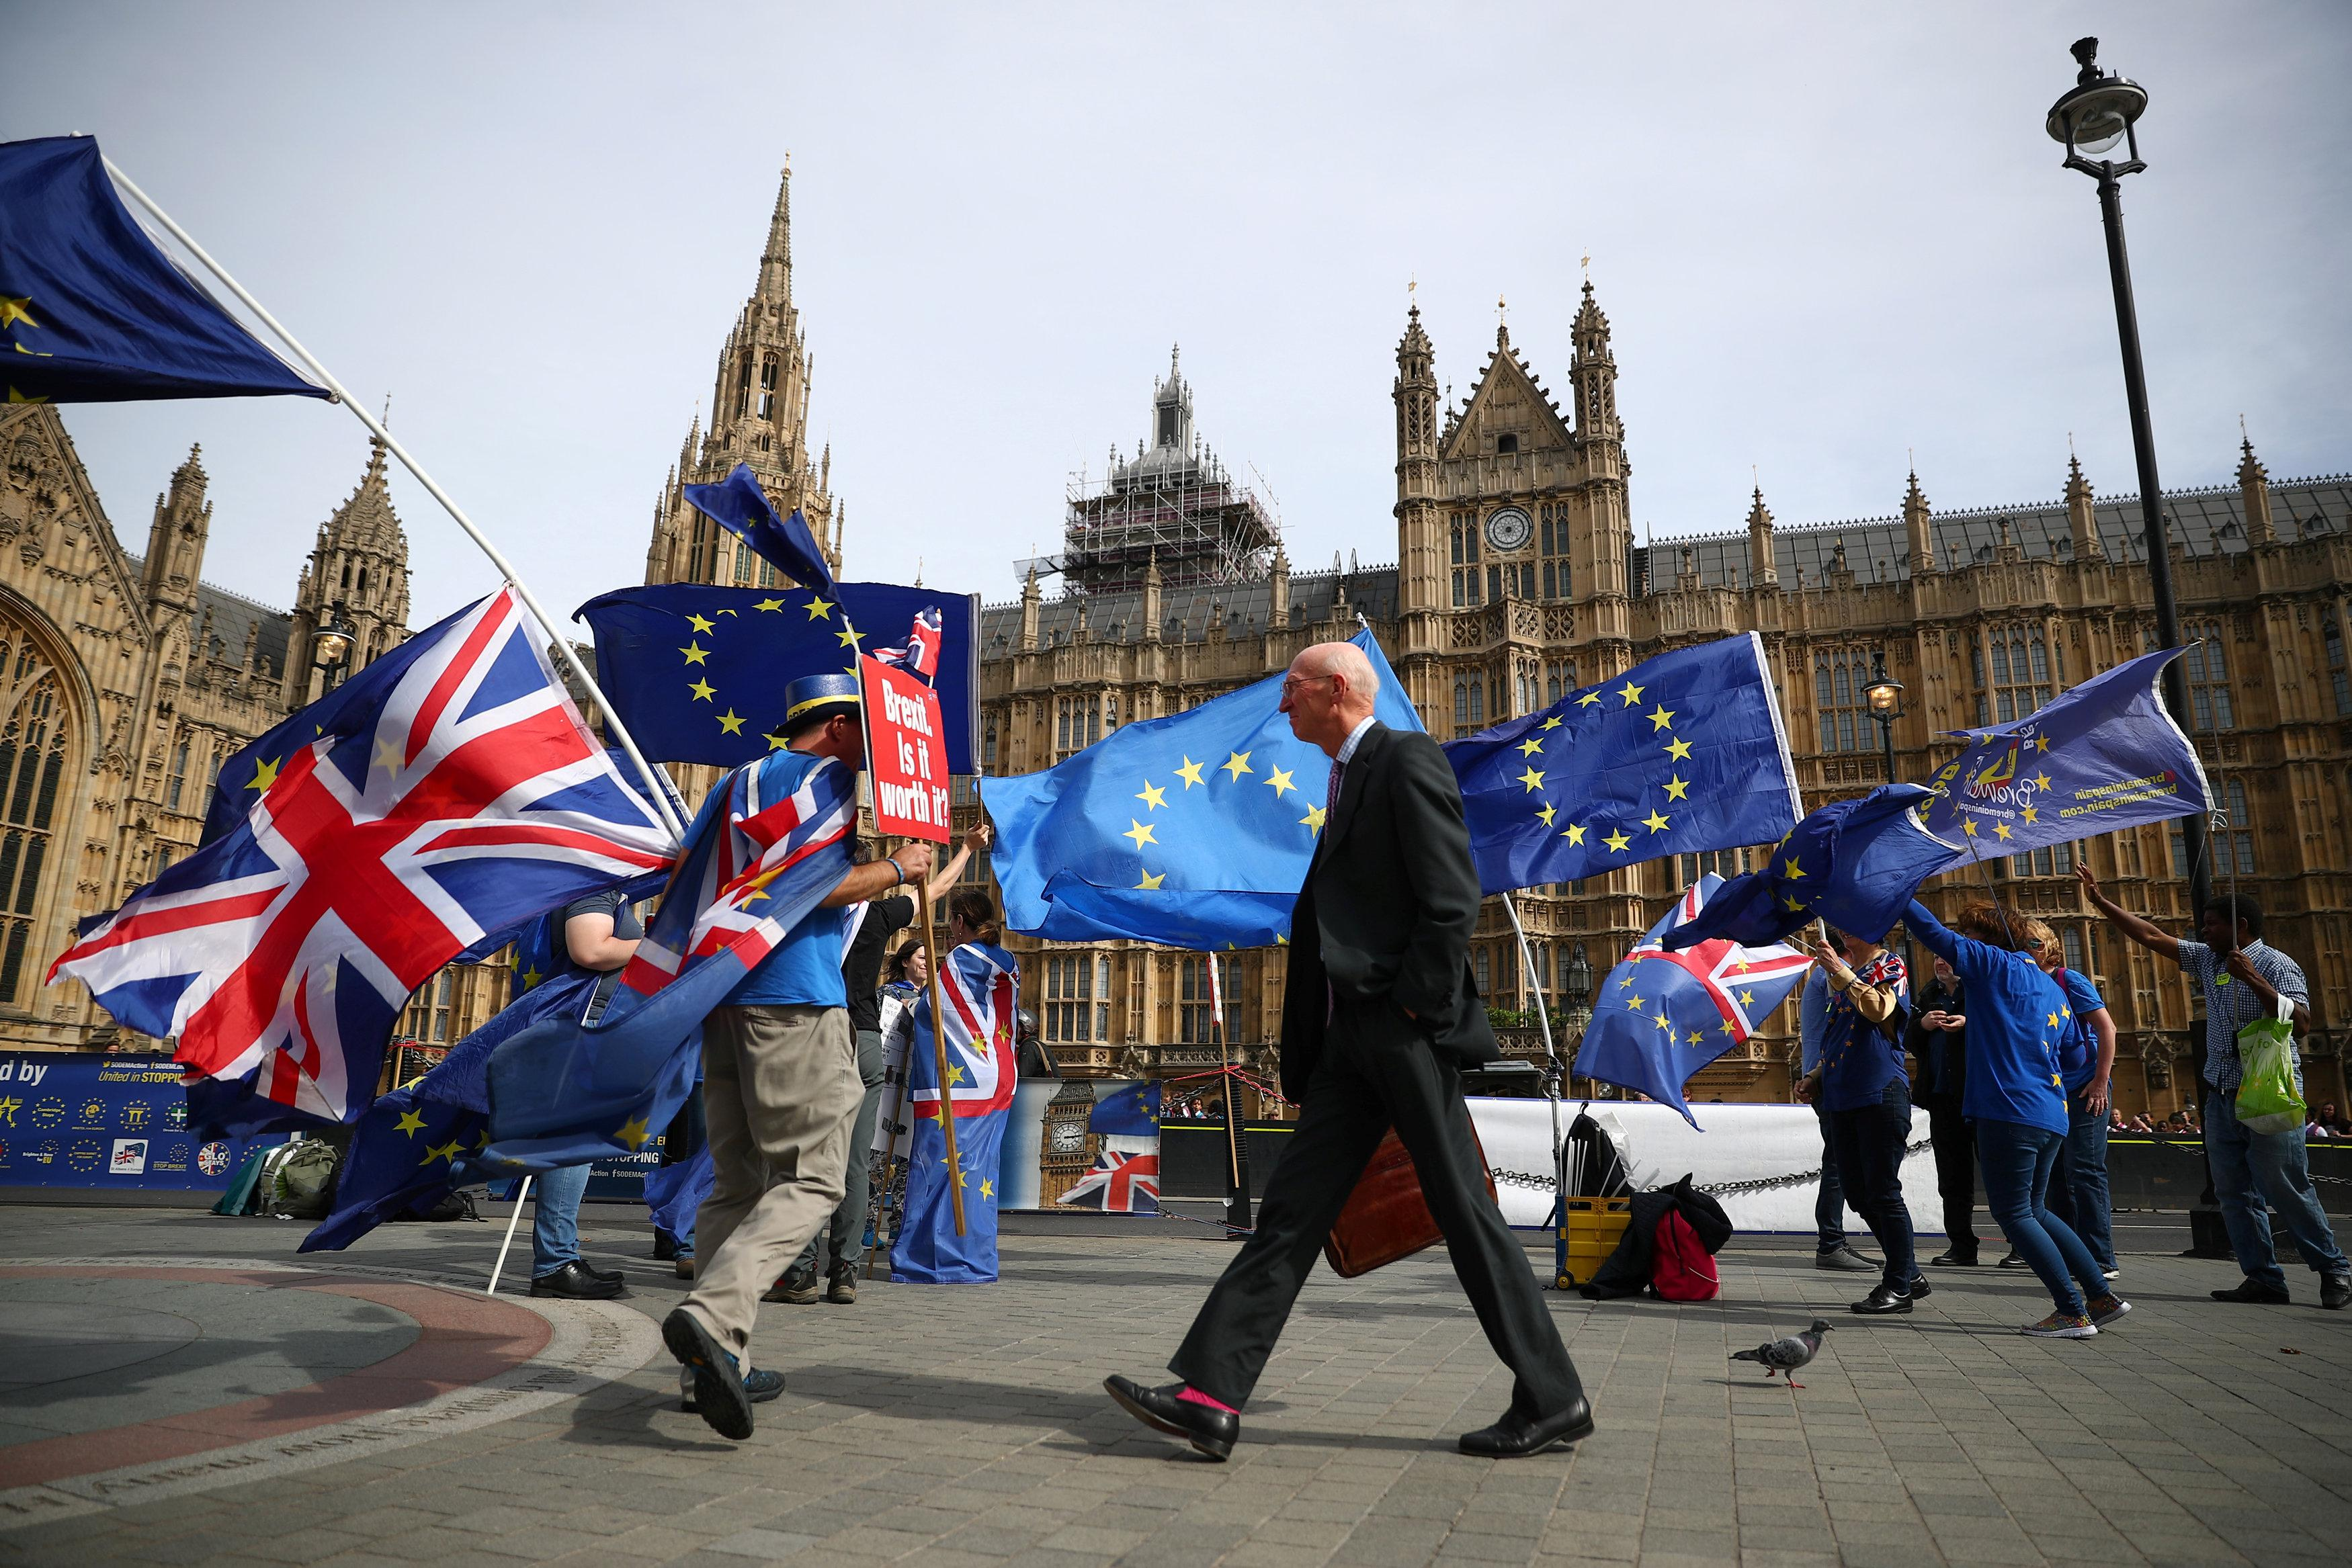 Brexiteers start 'chuck Chequers' campaign against UK PM May's plans